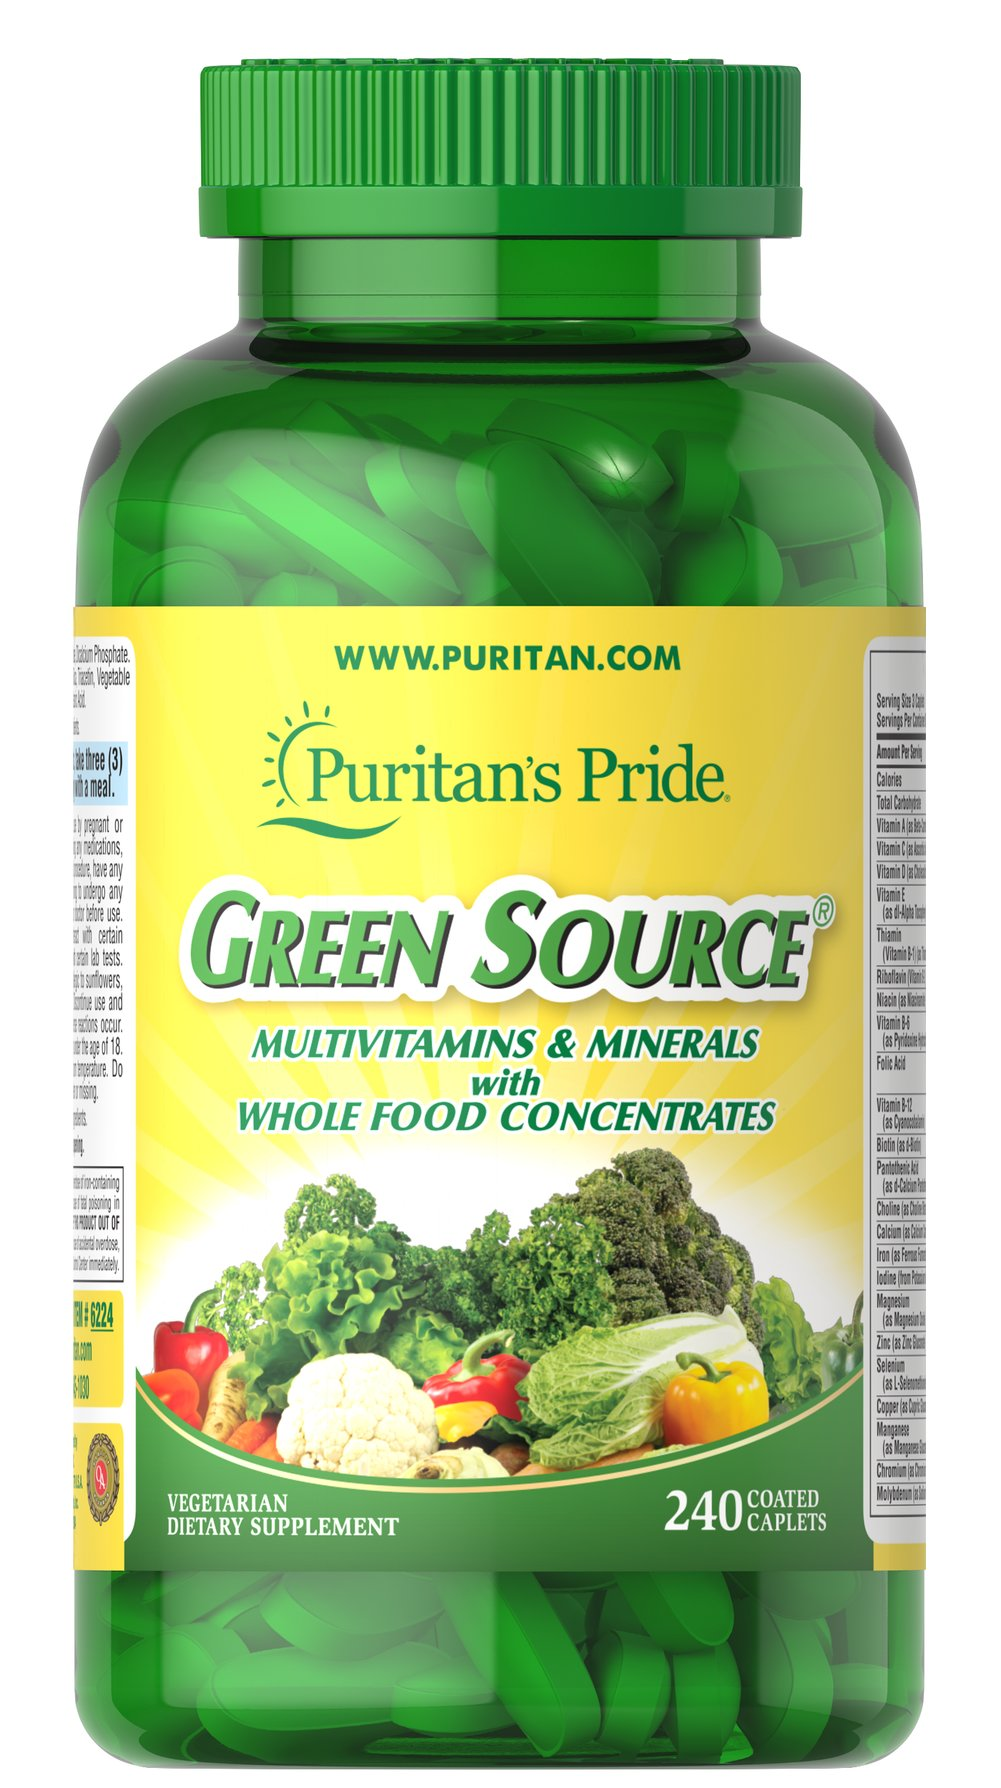 Green Source® Multivitamin & Minerals <p>This concentrated formula contains potent food source nutrients to provide essential vitamins, minerals, enzymes and amino acids. It also provides all the naturally occurring active constituents of whole foods.</p> 240 Caplets